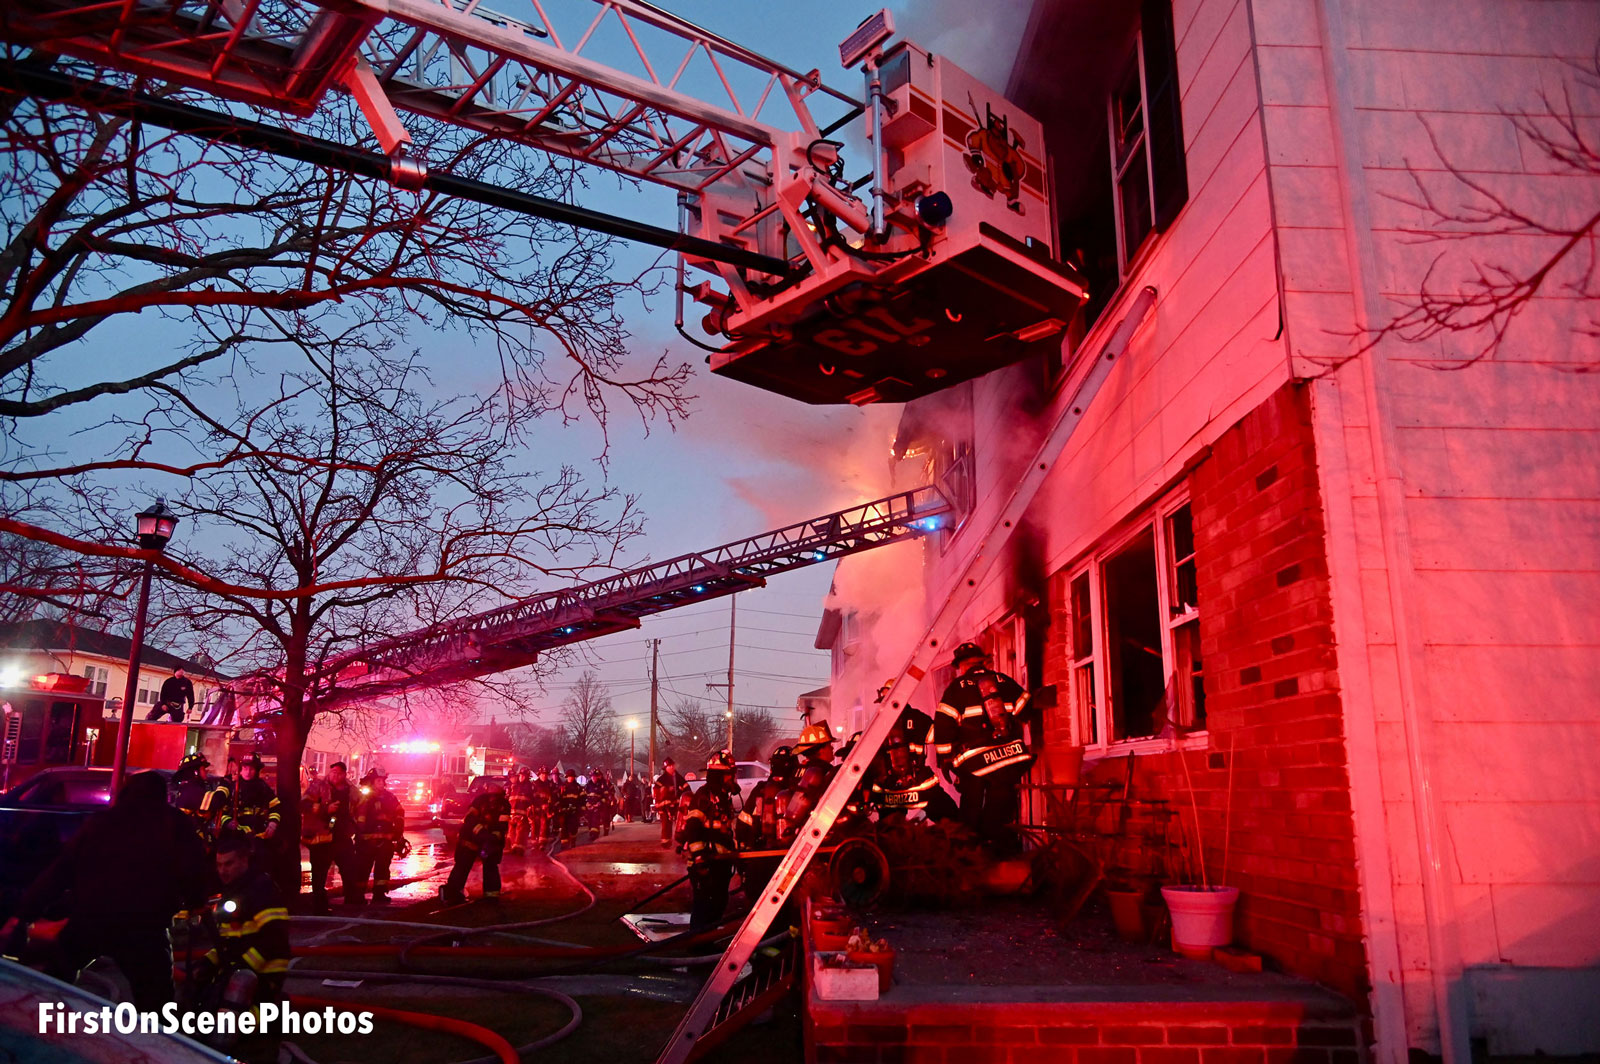 A view of various ladders and apparatus at the fire scene